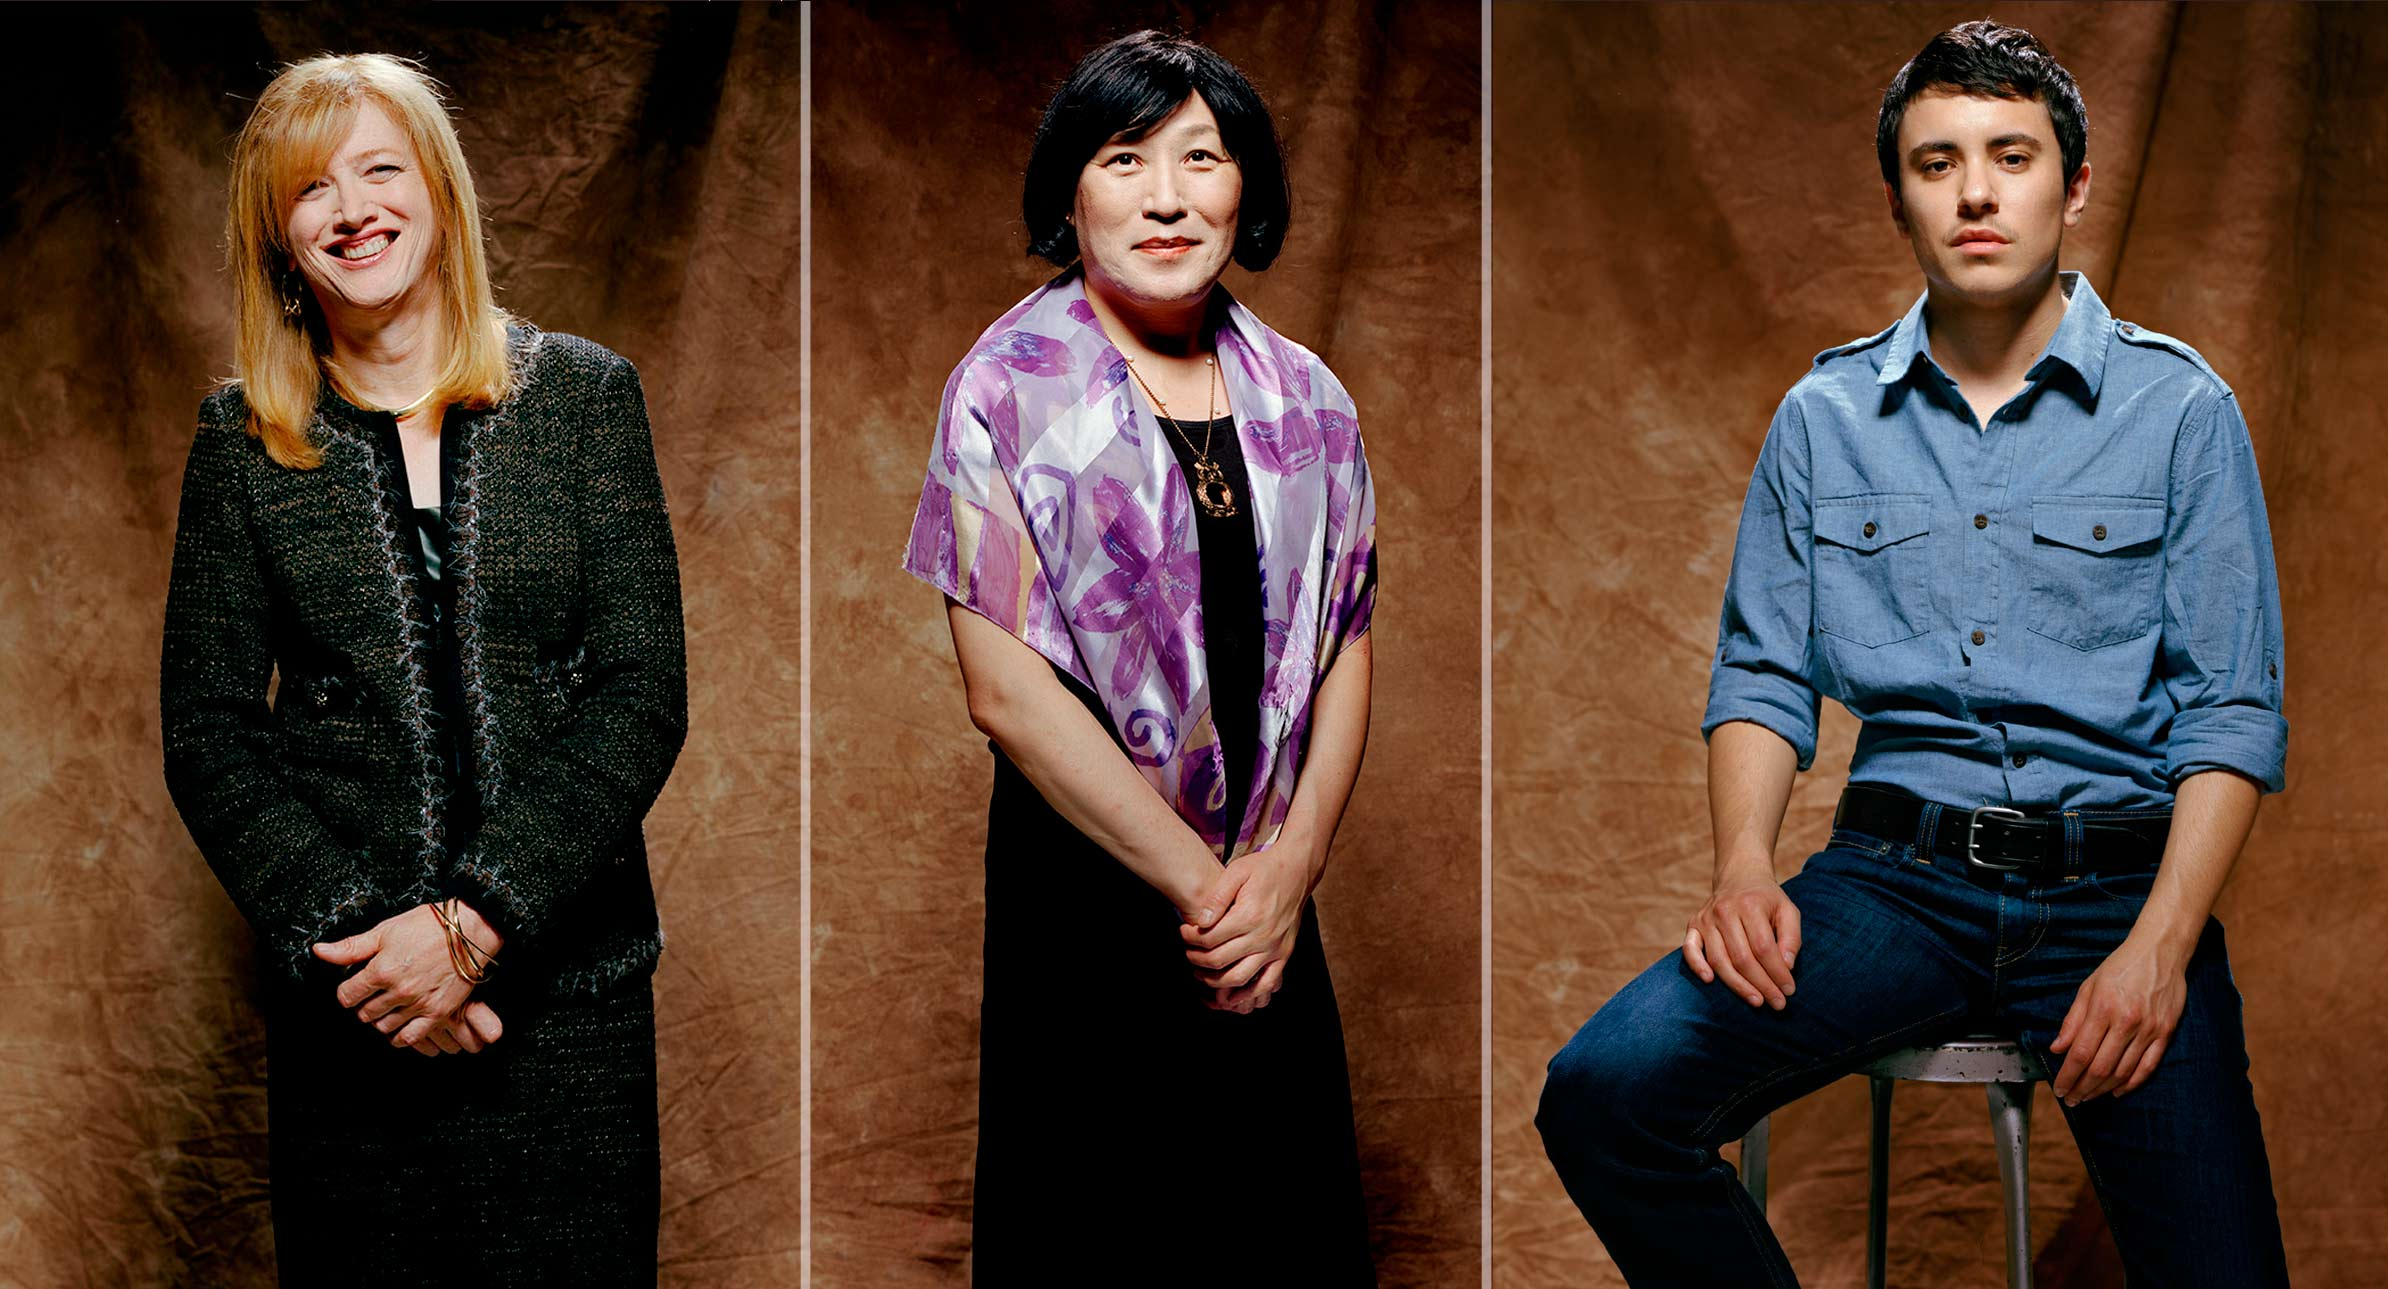 From left, Margaret Stumpp, Pauline Park, and Sam. Photographed for The New Republic, New York City, 2011.